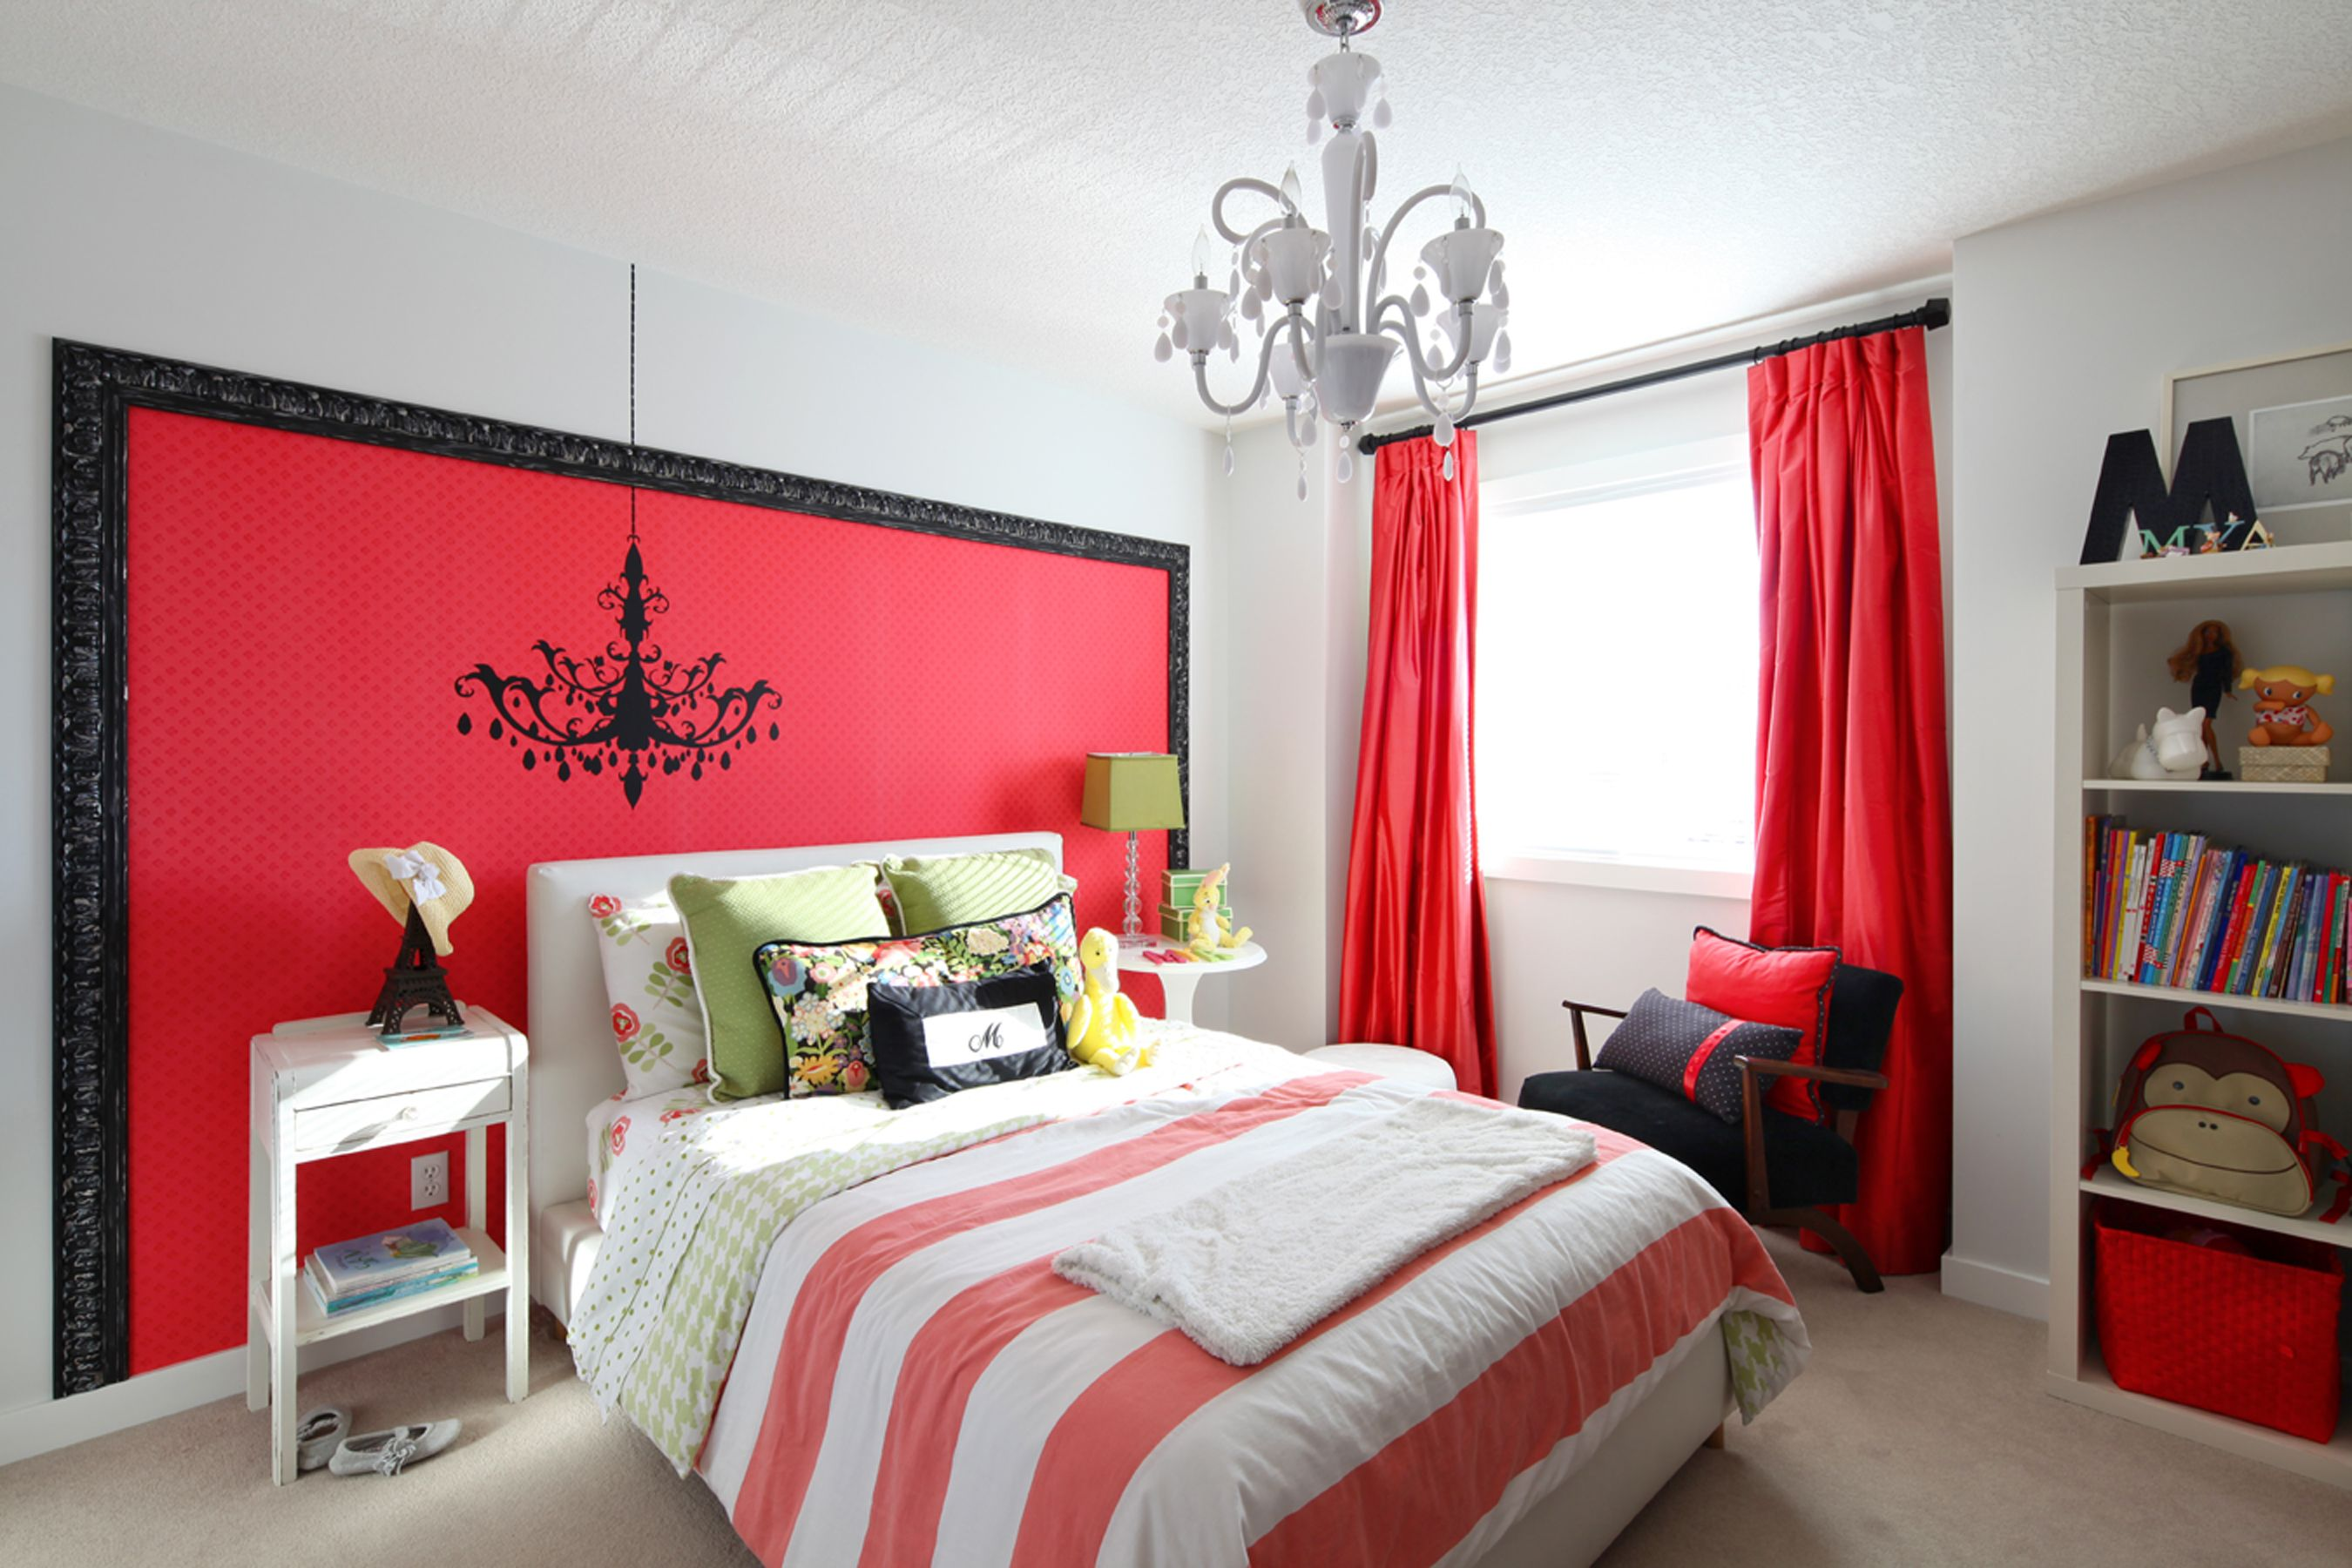 Not a fan of the room, but I love the mix of patterns on the bed ...